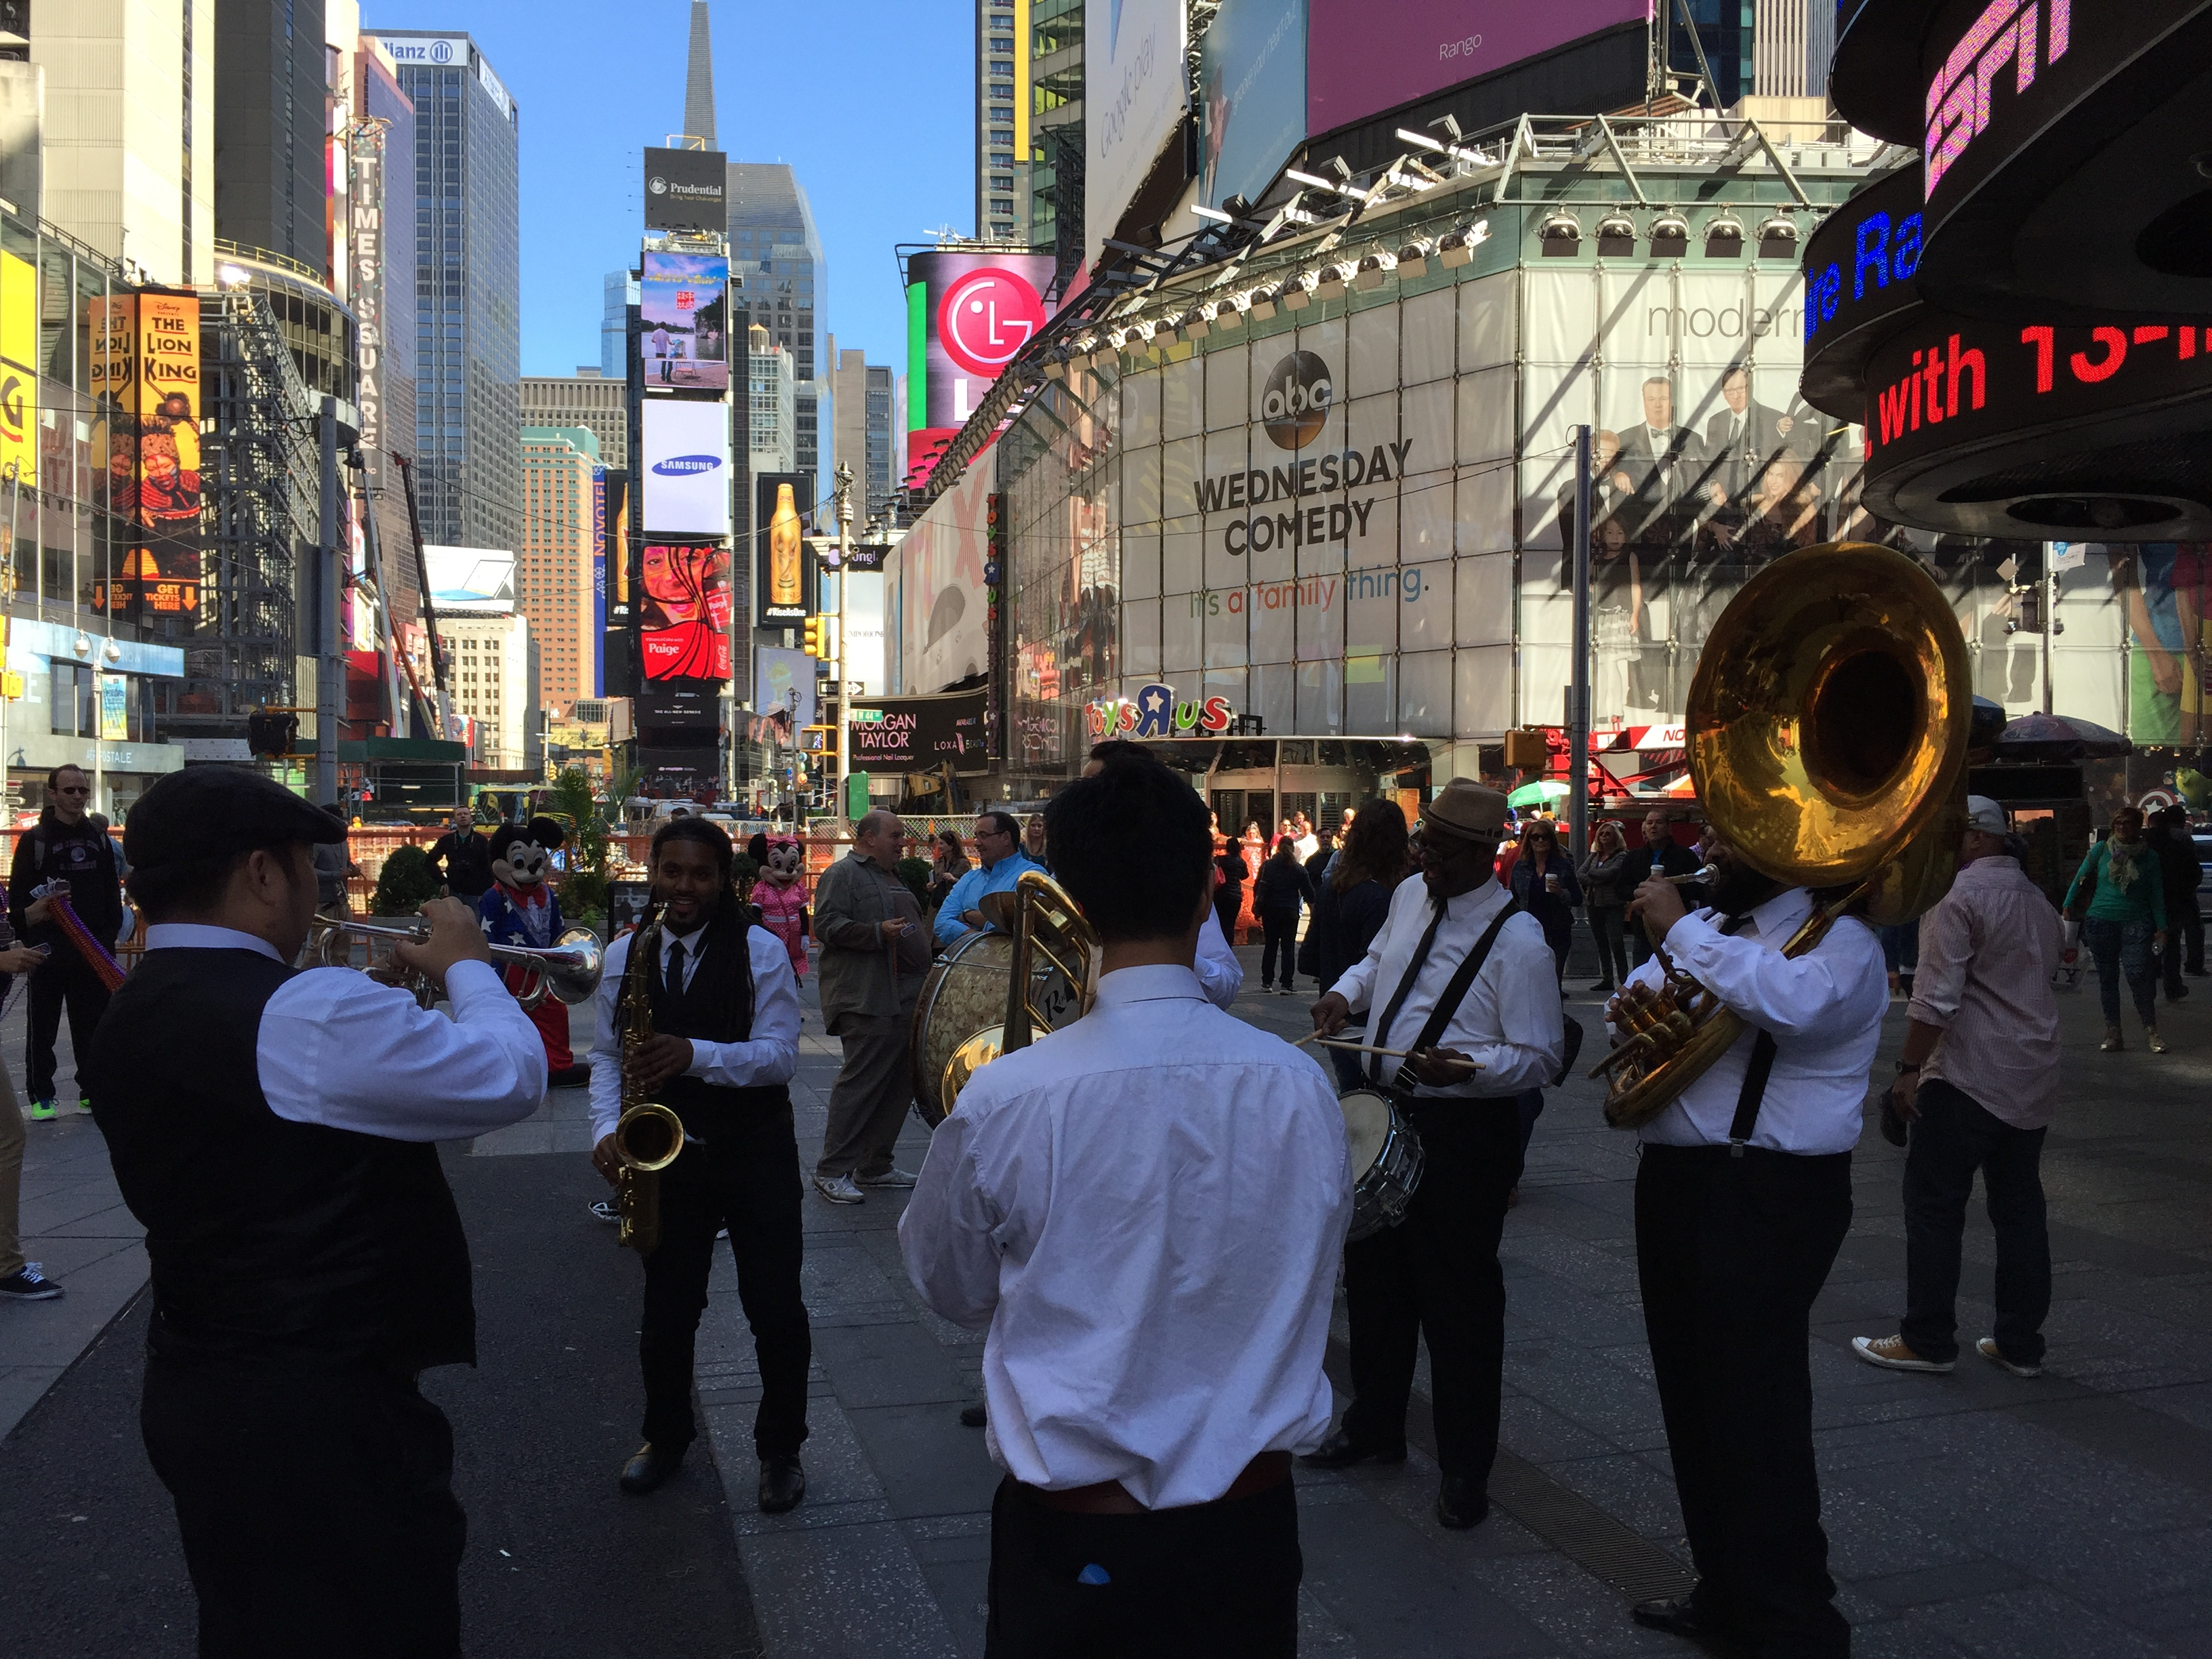 NCIS New Orleans Jazz Band in Times Square